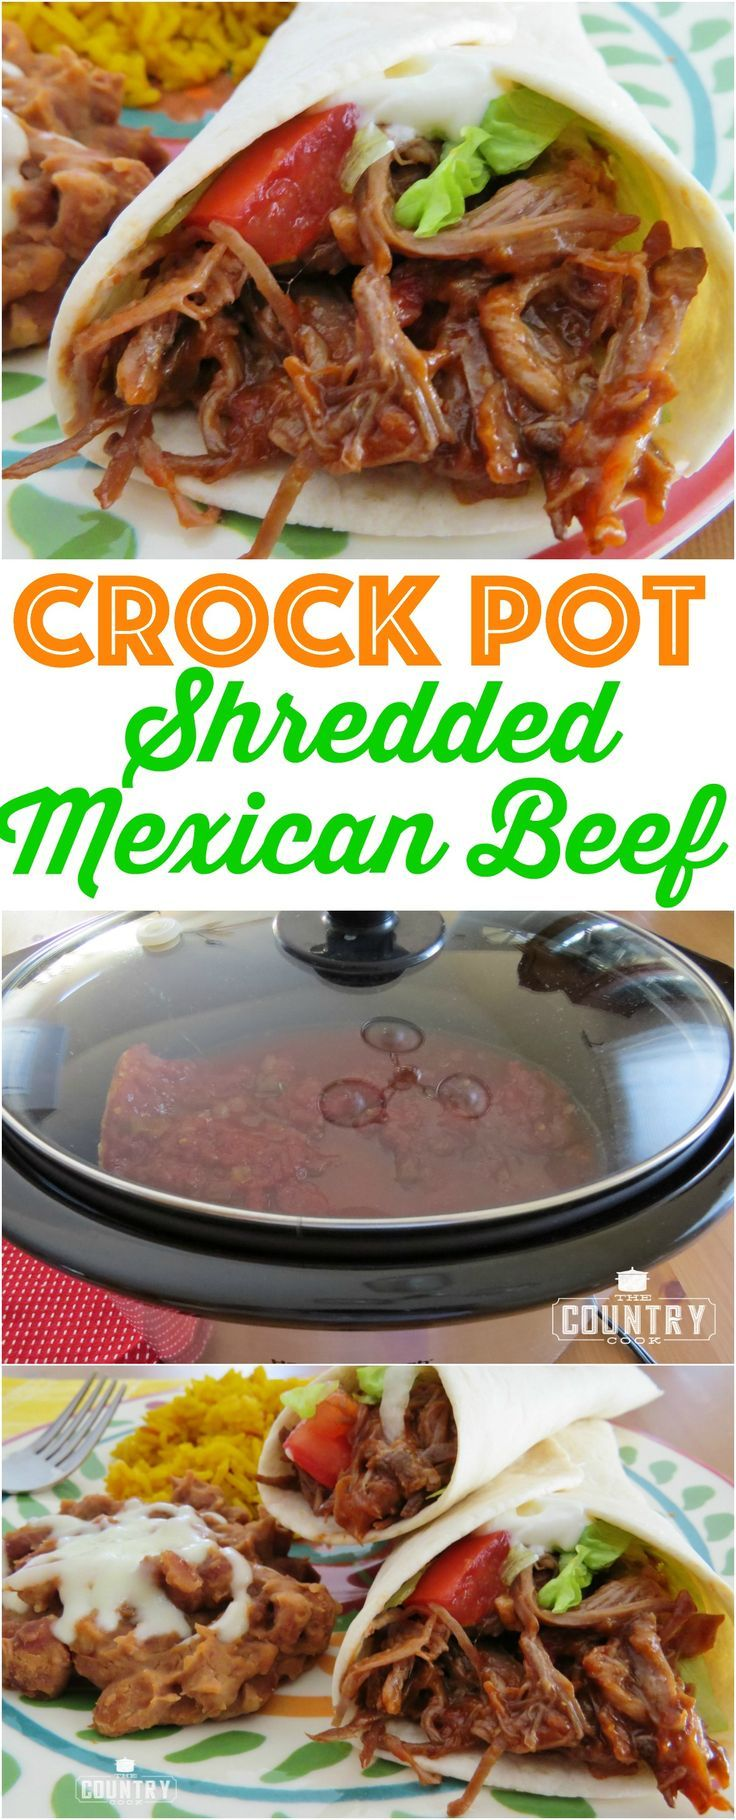 Crock Pot Mexican Shredded Beef recipe from The Country Cook